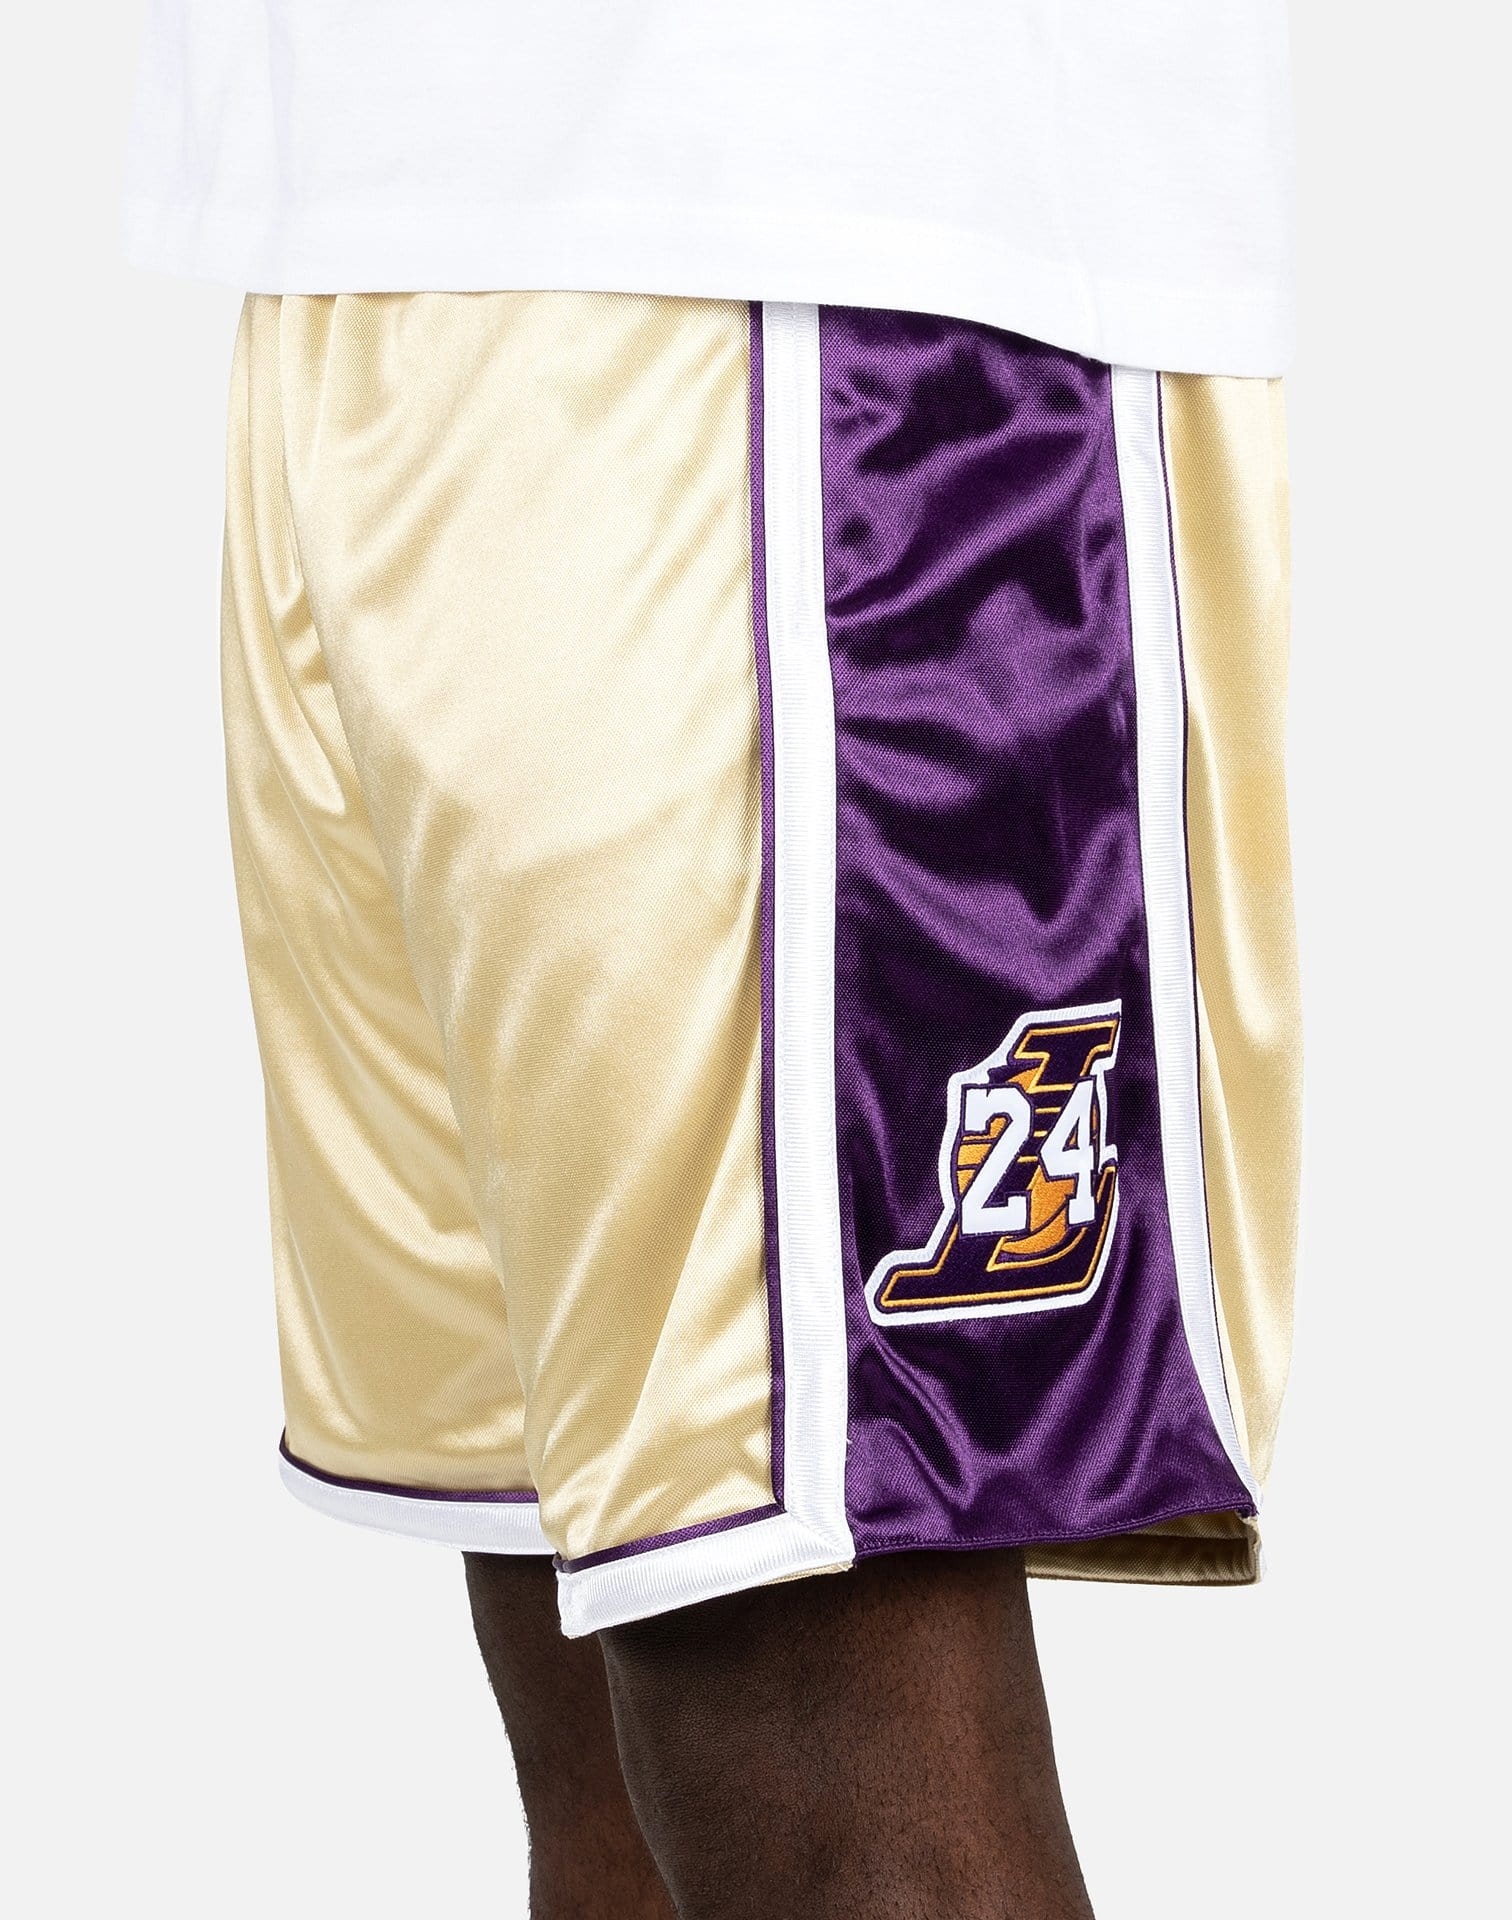 NBA LA LAKERS KOBE BRYANT AUTHENTIC HALL OF FAME JERSEY SHORTS – DTLR